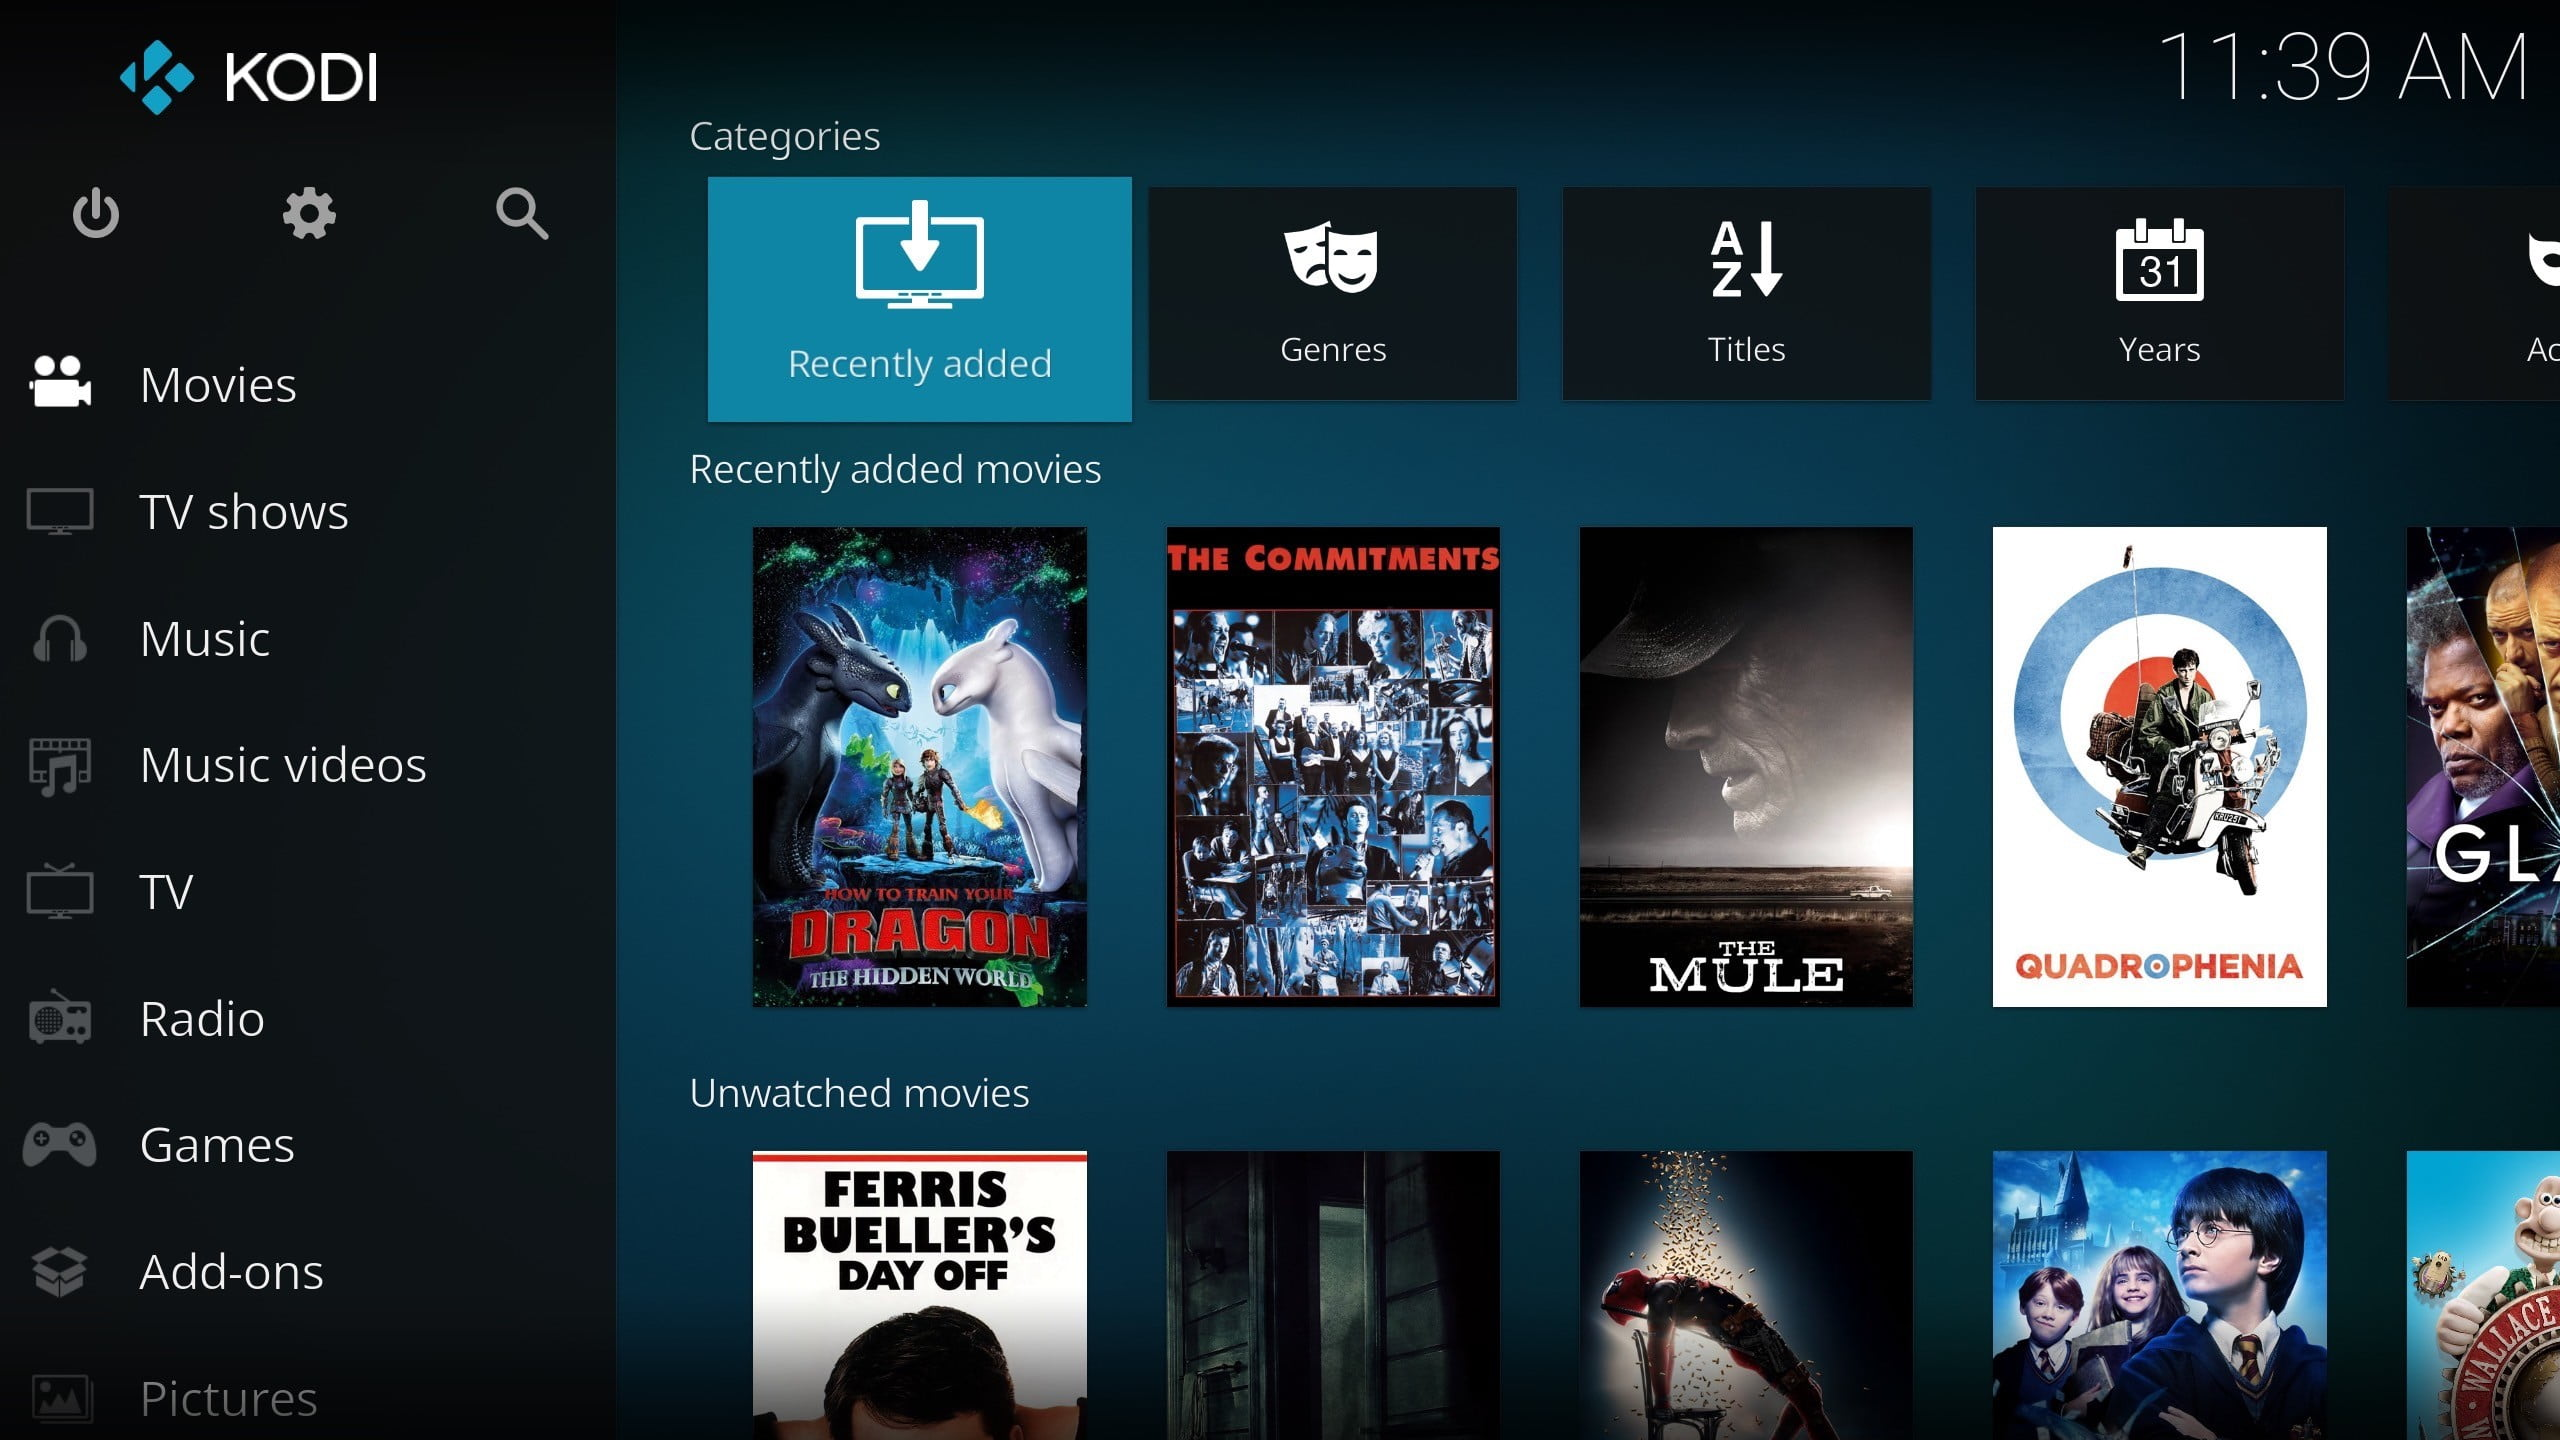 Best Kodi Skin 2020 What Is Kodi? Here's How to Use This Awesome Free Media Software